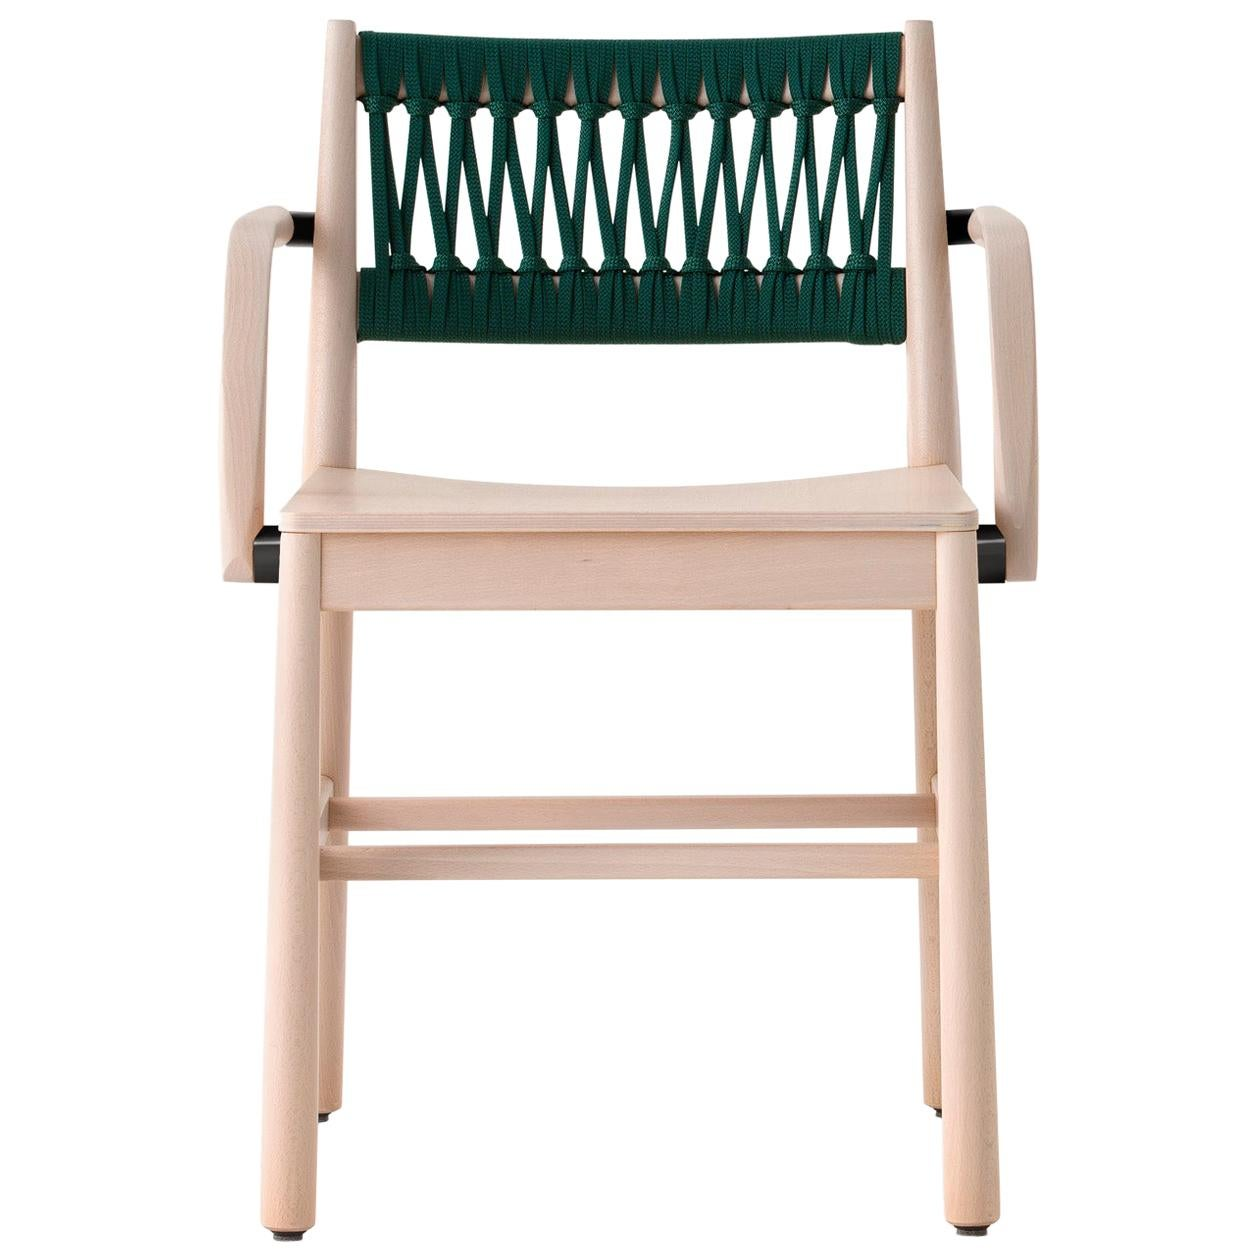 Chair Art, 0024-IN-AR in Beechwood Natural and Color Rope Back by Emilio Nanni